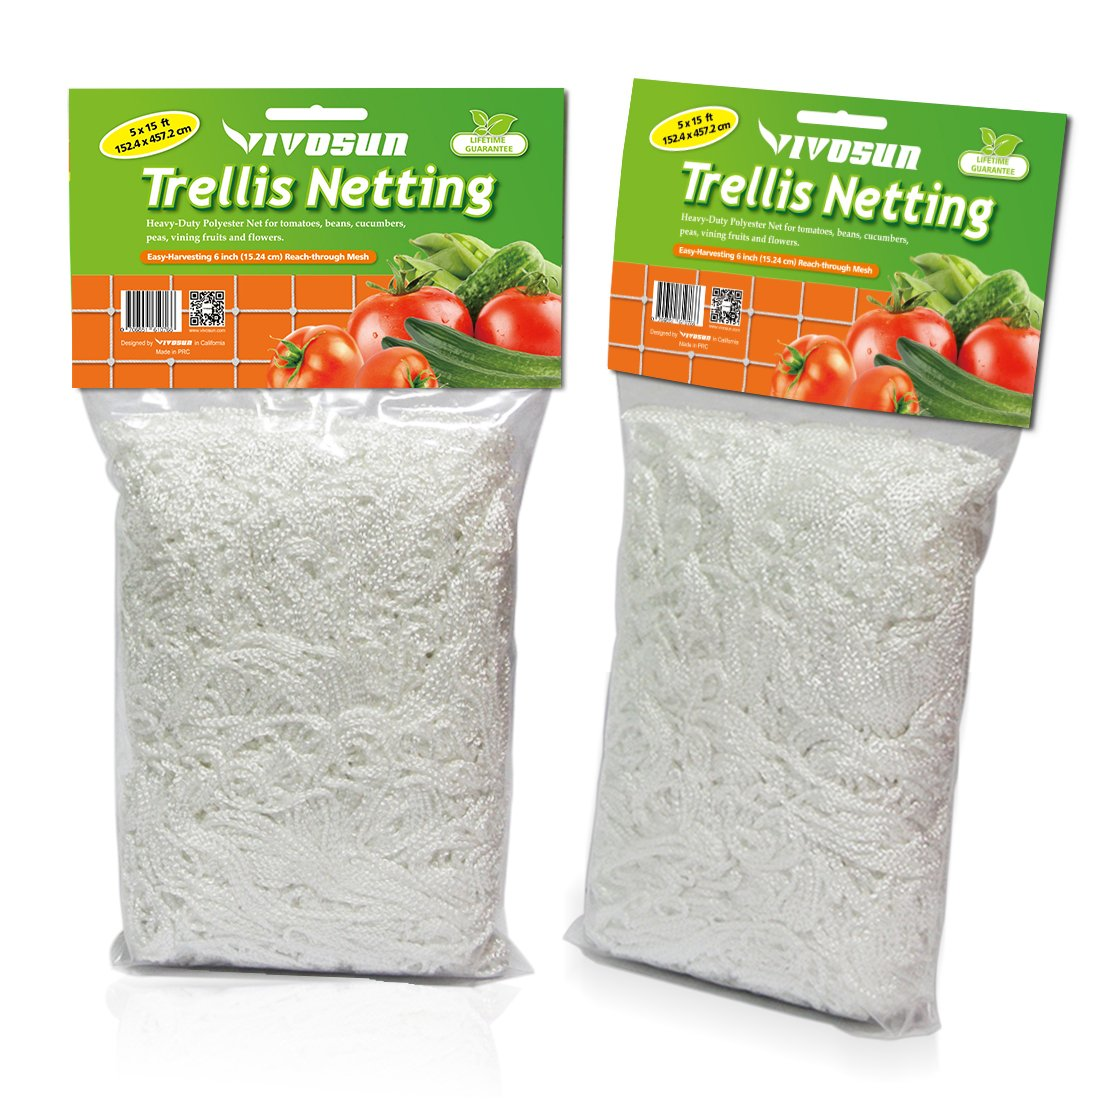 VIVOSUN Heavy-Duty Polyester Plant Trellis Netting 5 x 15ft 2 Pack